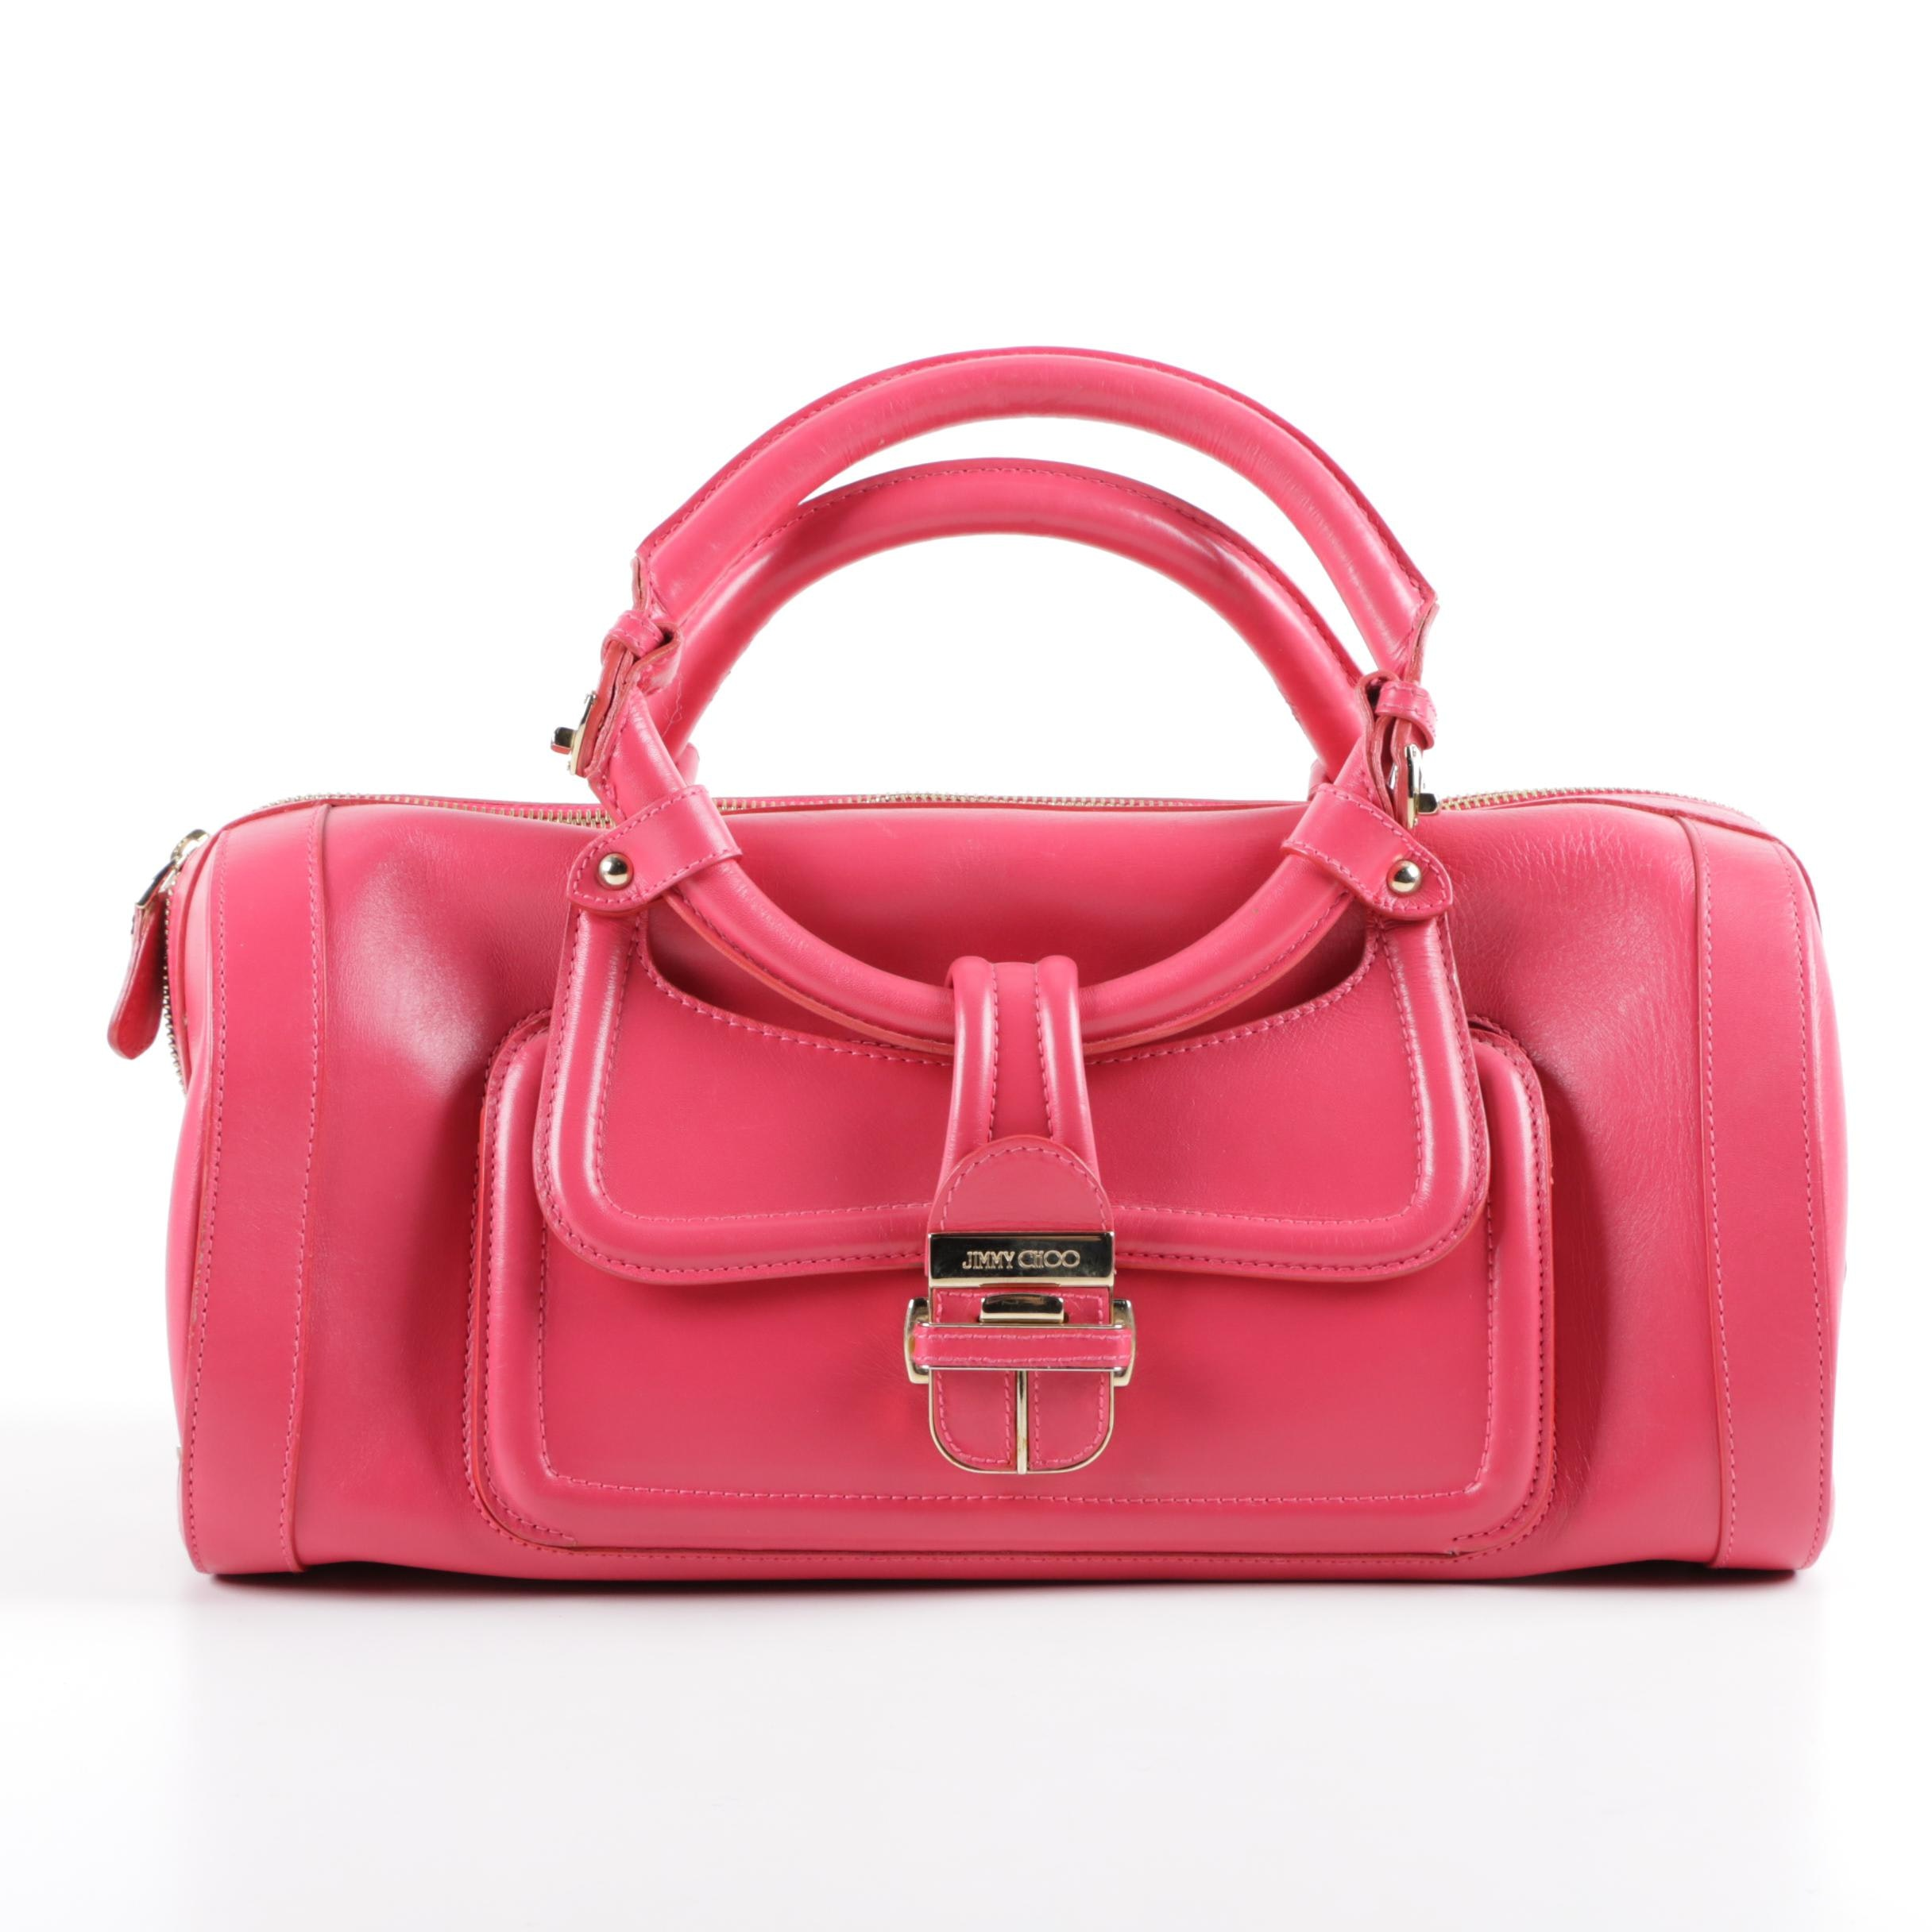 Jimmy Choo Tahula Hillary Doctor Bag in Pink Leather